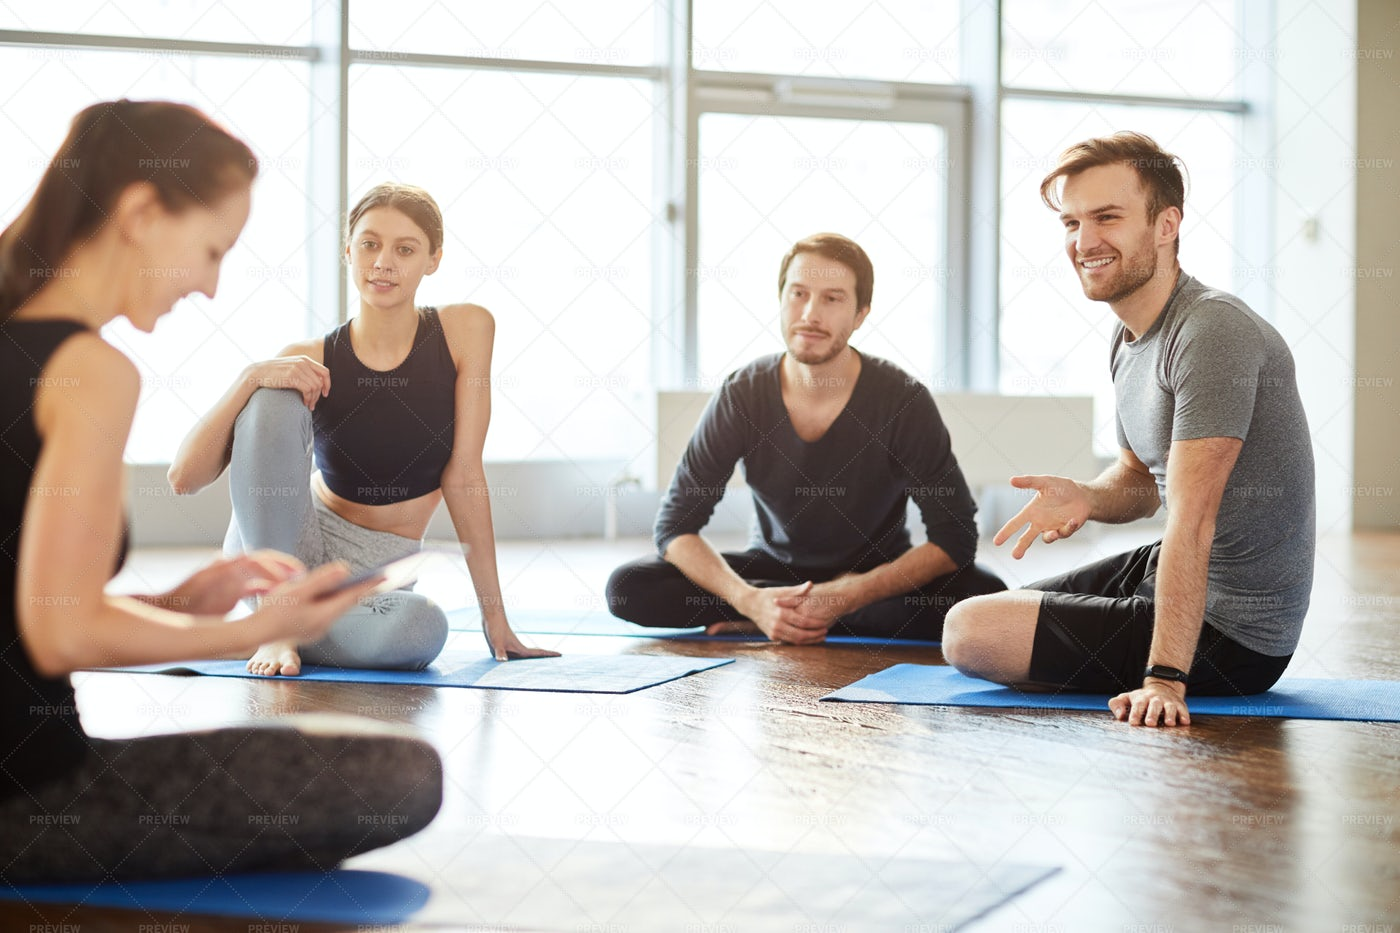 Talking To Yoga Teacher At Class: Stock Photos